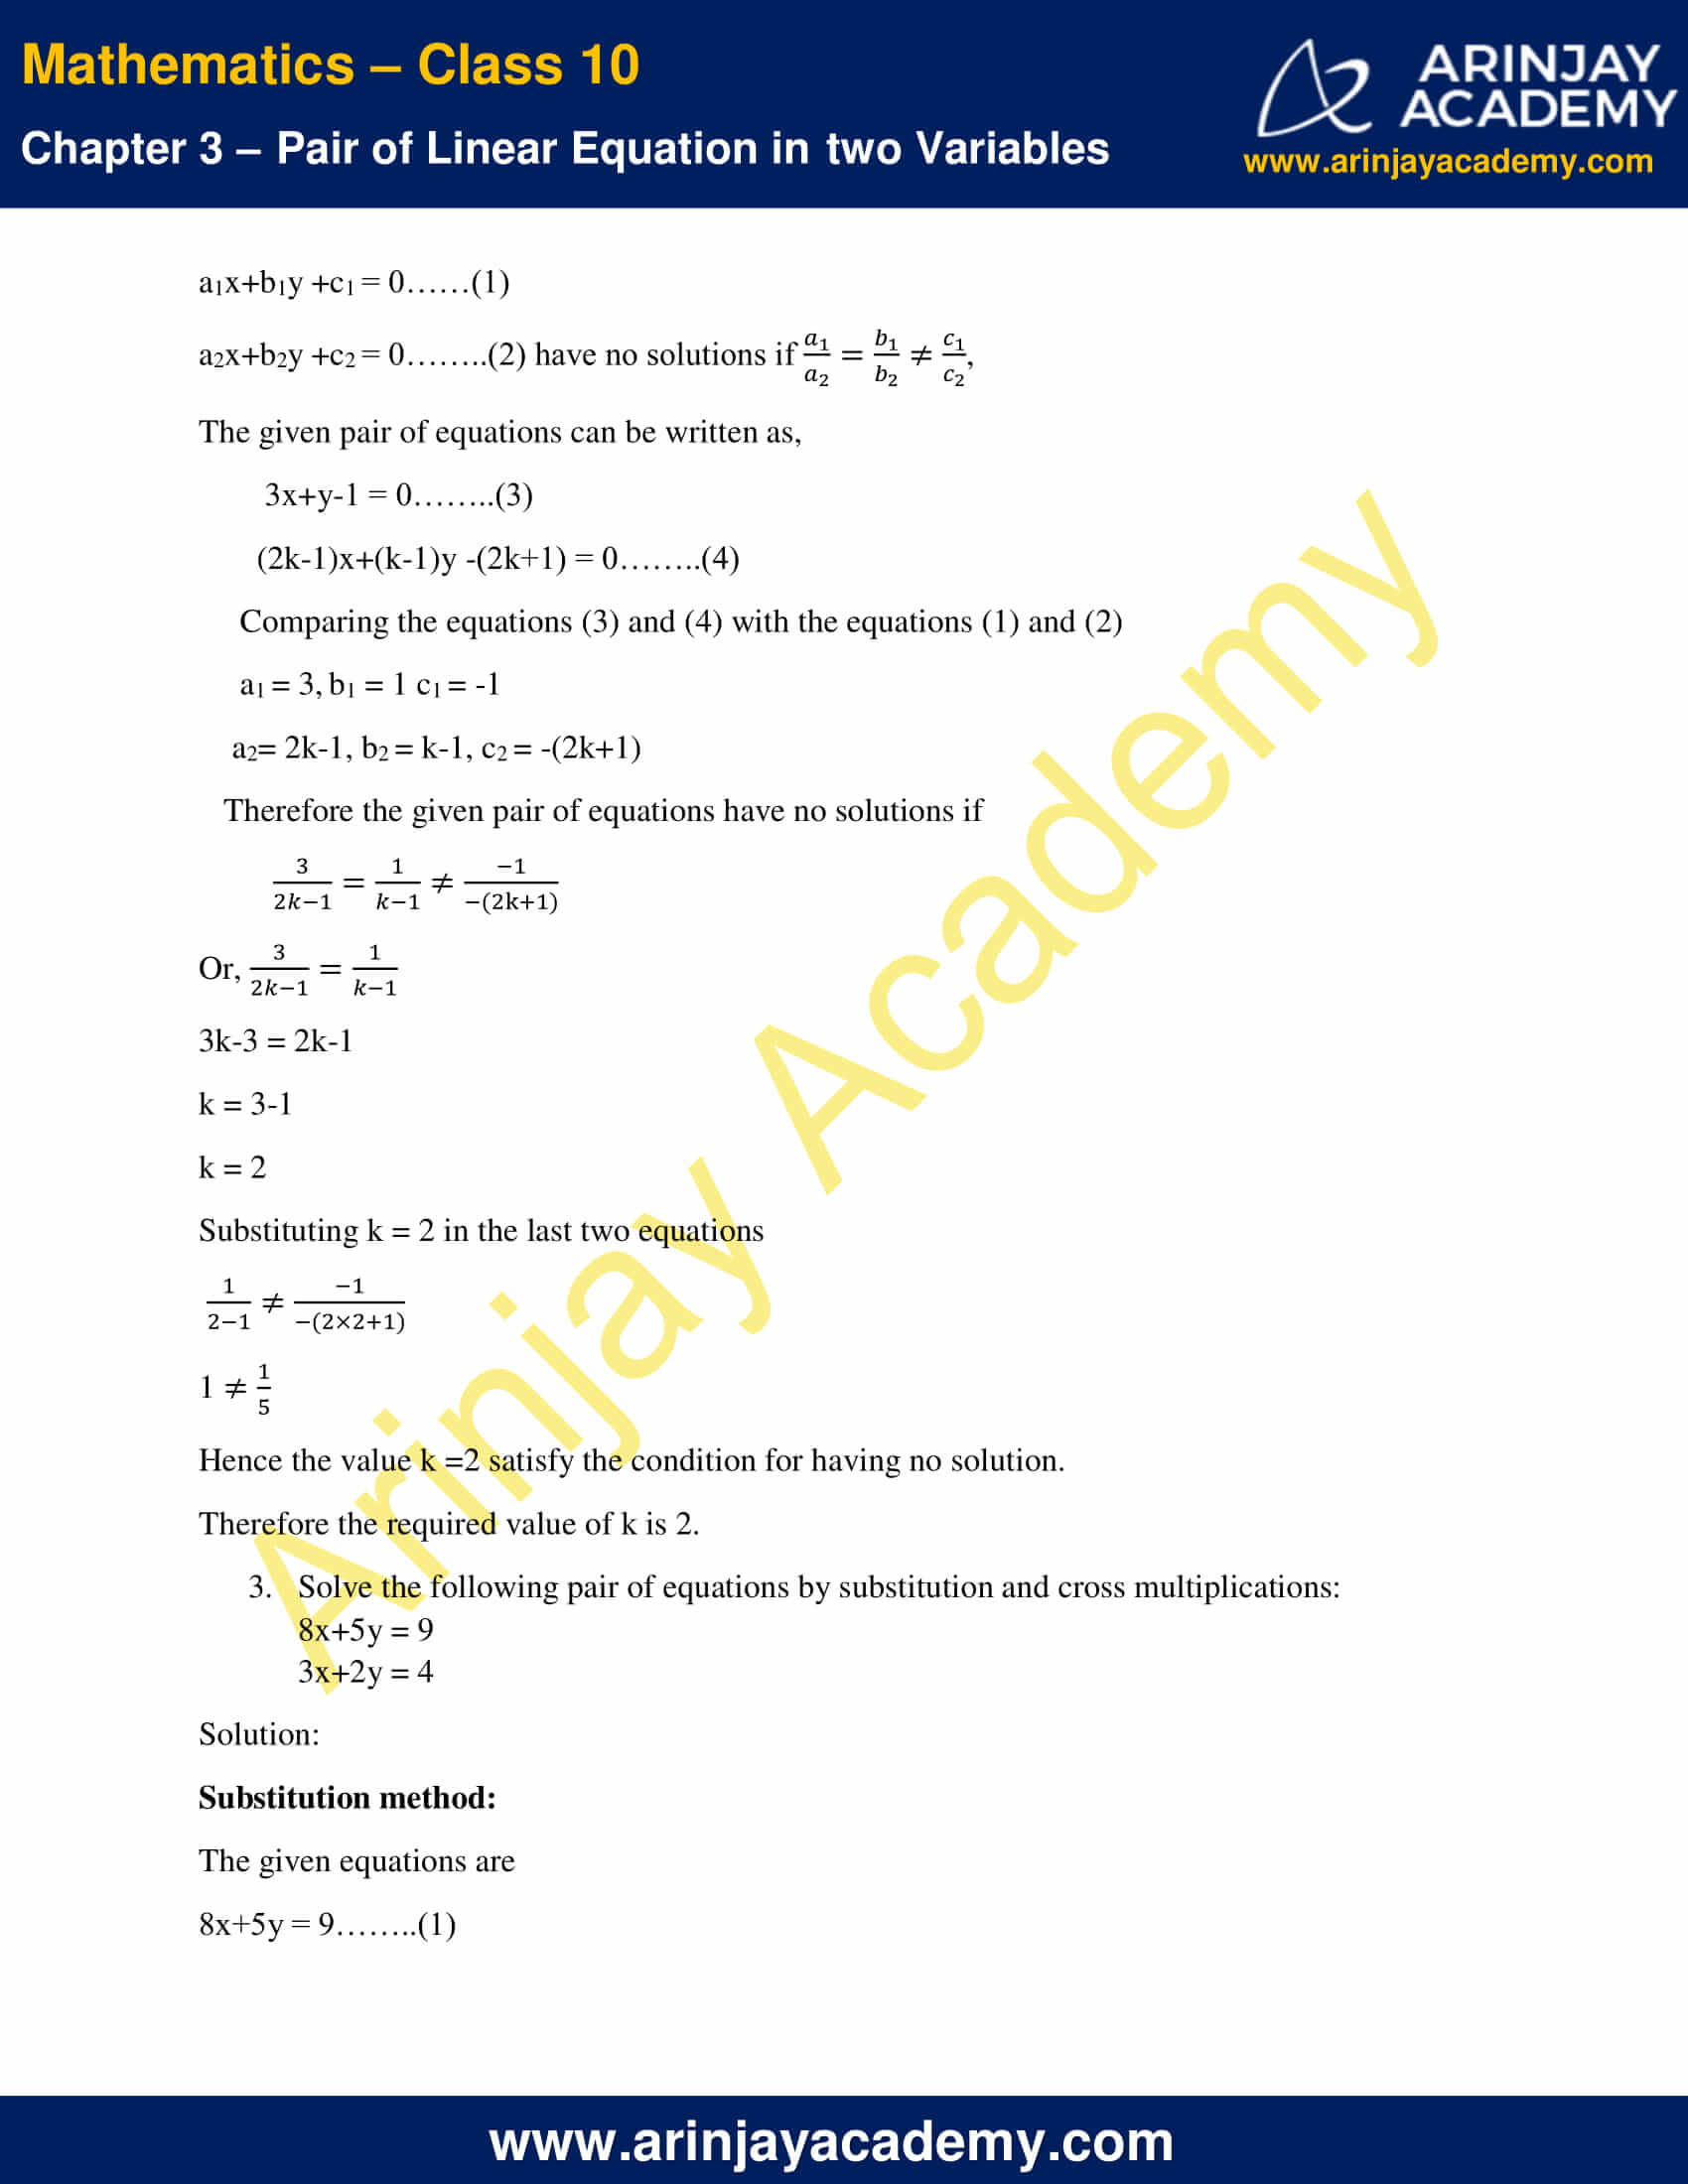 NCERT Solutions For Class 10 Maths Chapter 3 Exercise 3.5 image 5